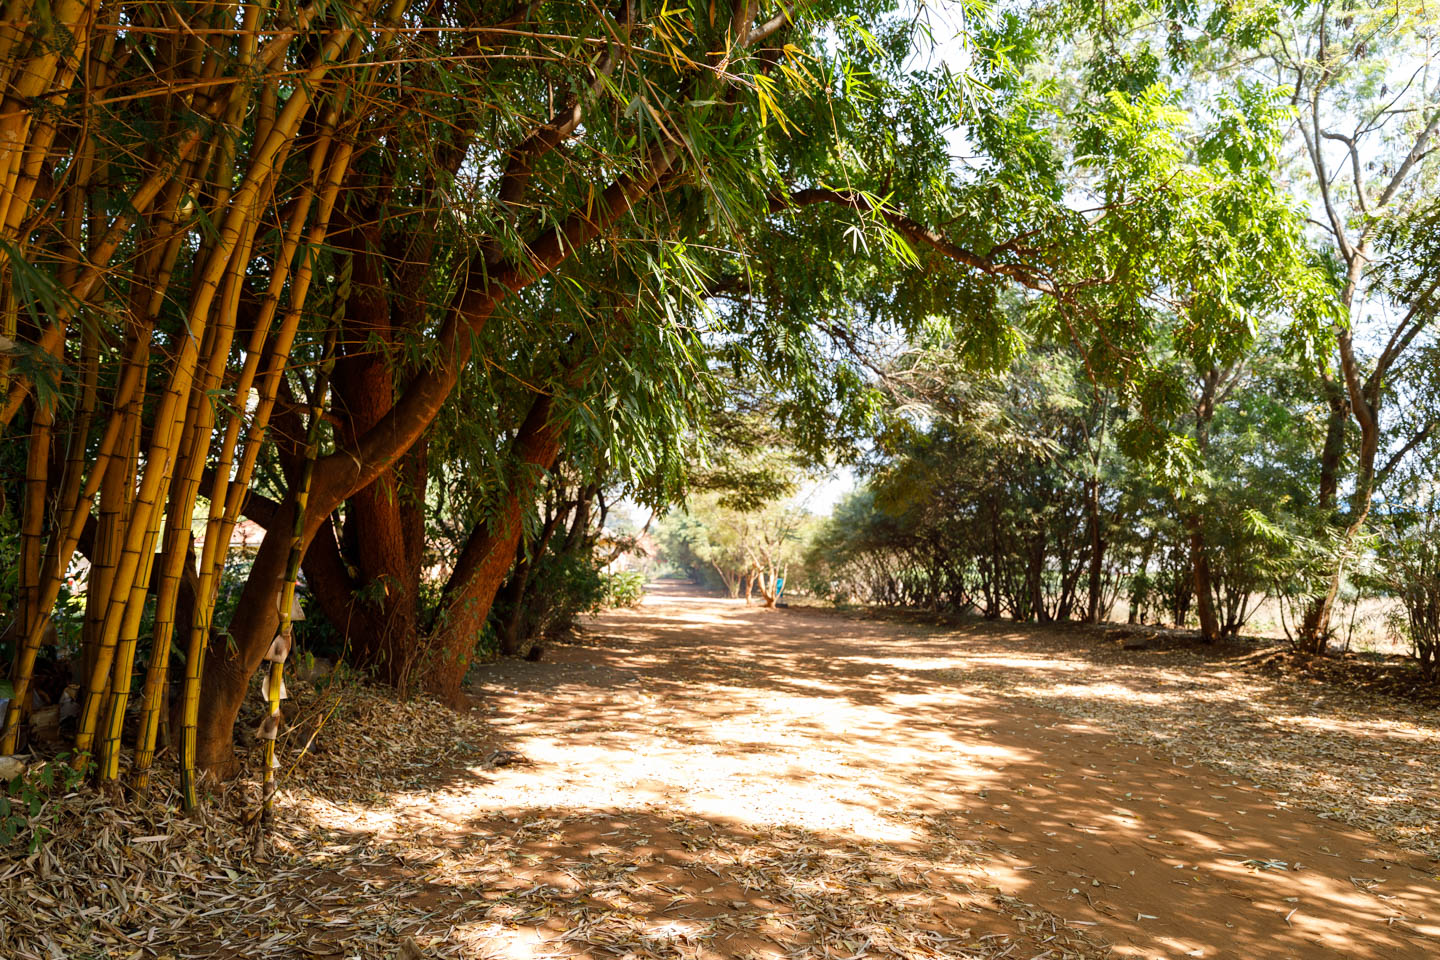 A road lined with bamboo in Malawi